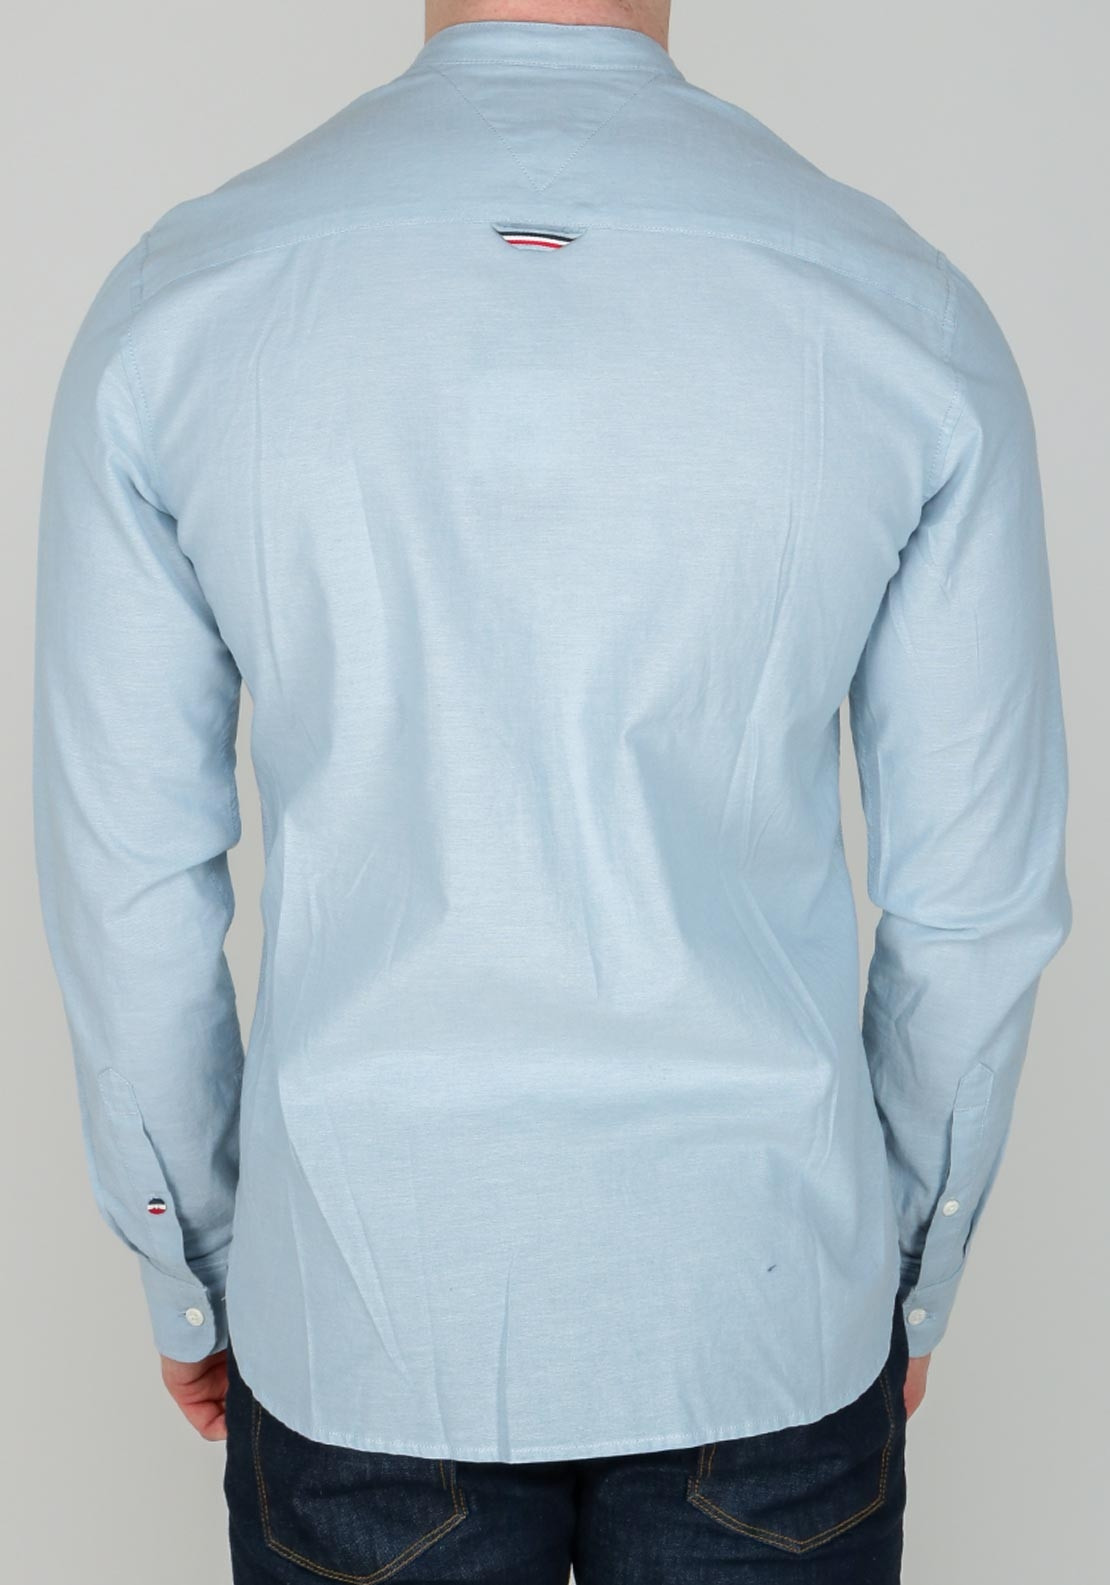 7669eaae Tommy Jean's Men's Basic Grandad Shirt, Light Blue | McElhinneys